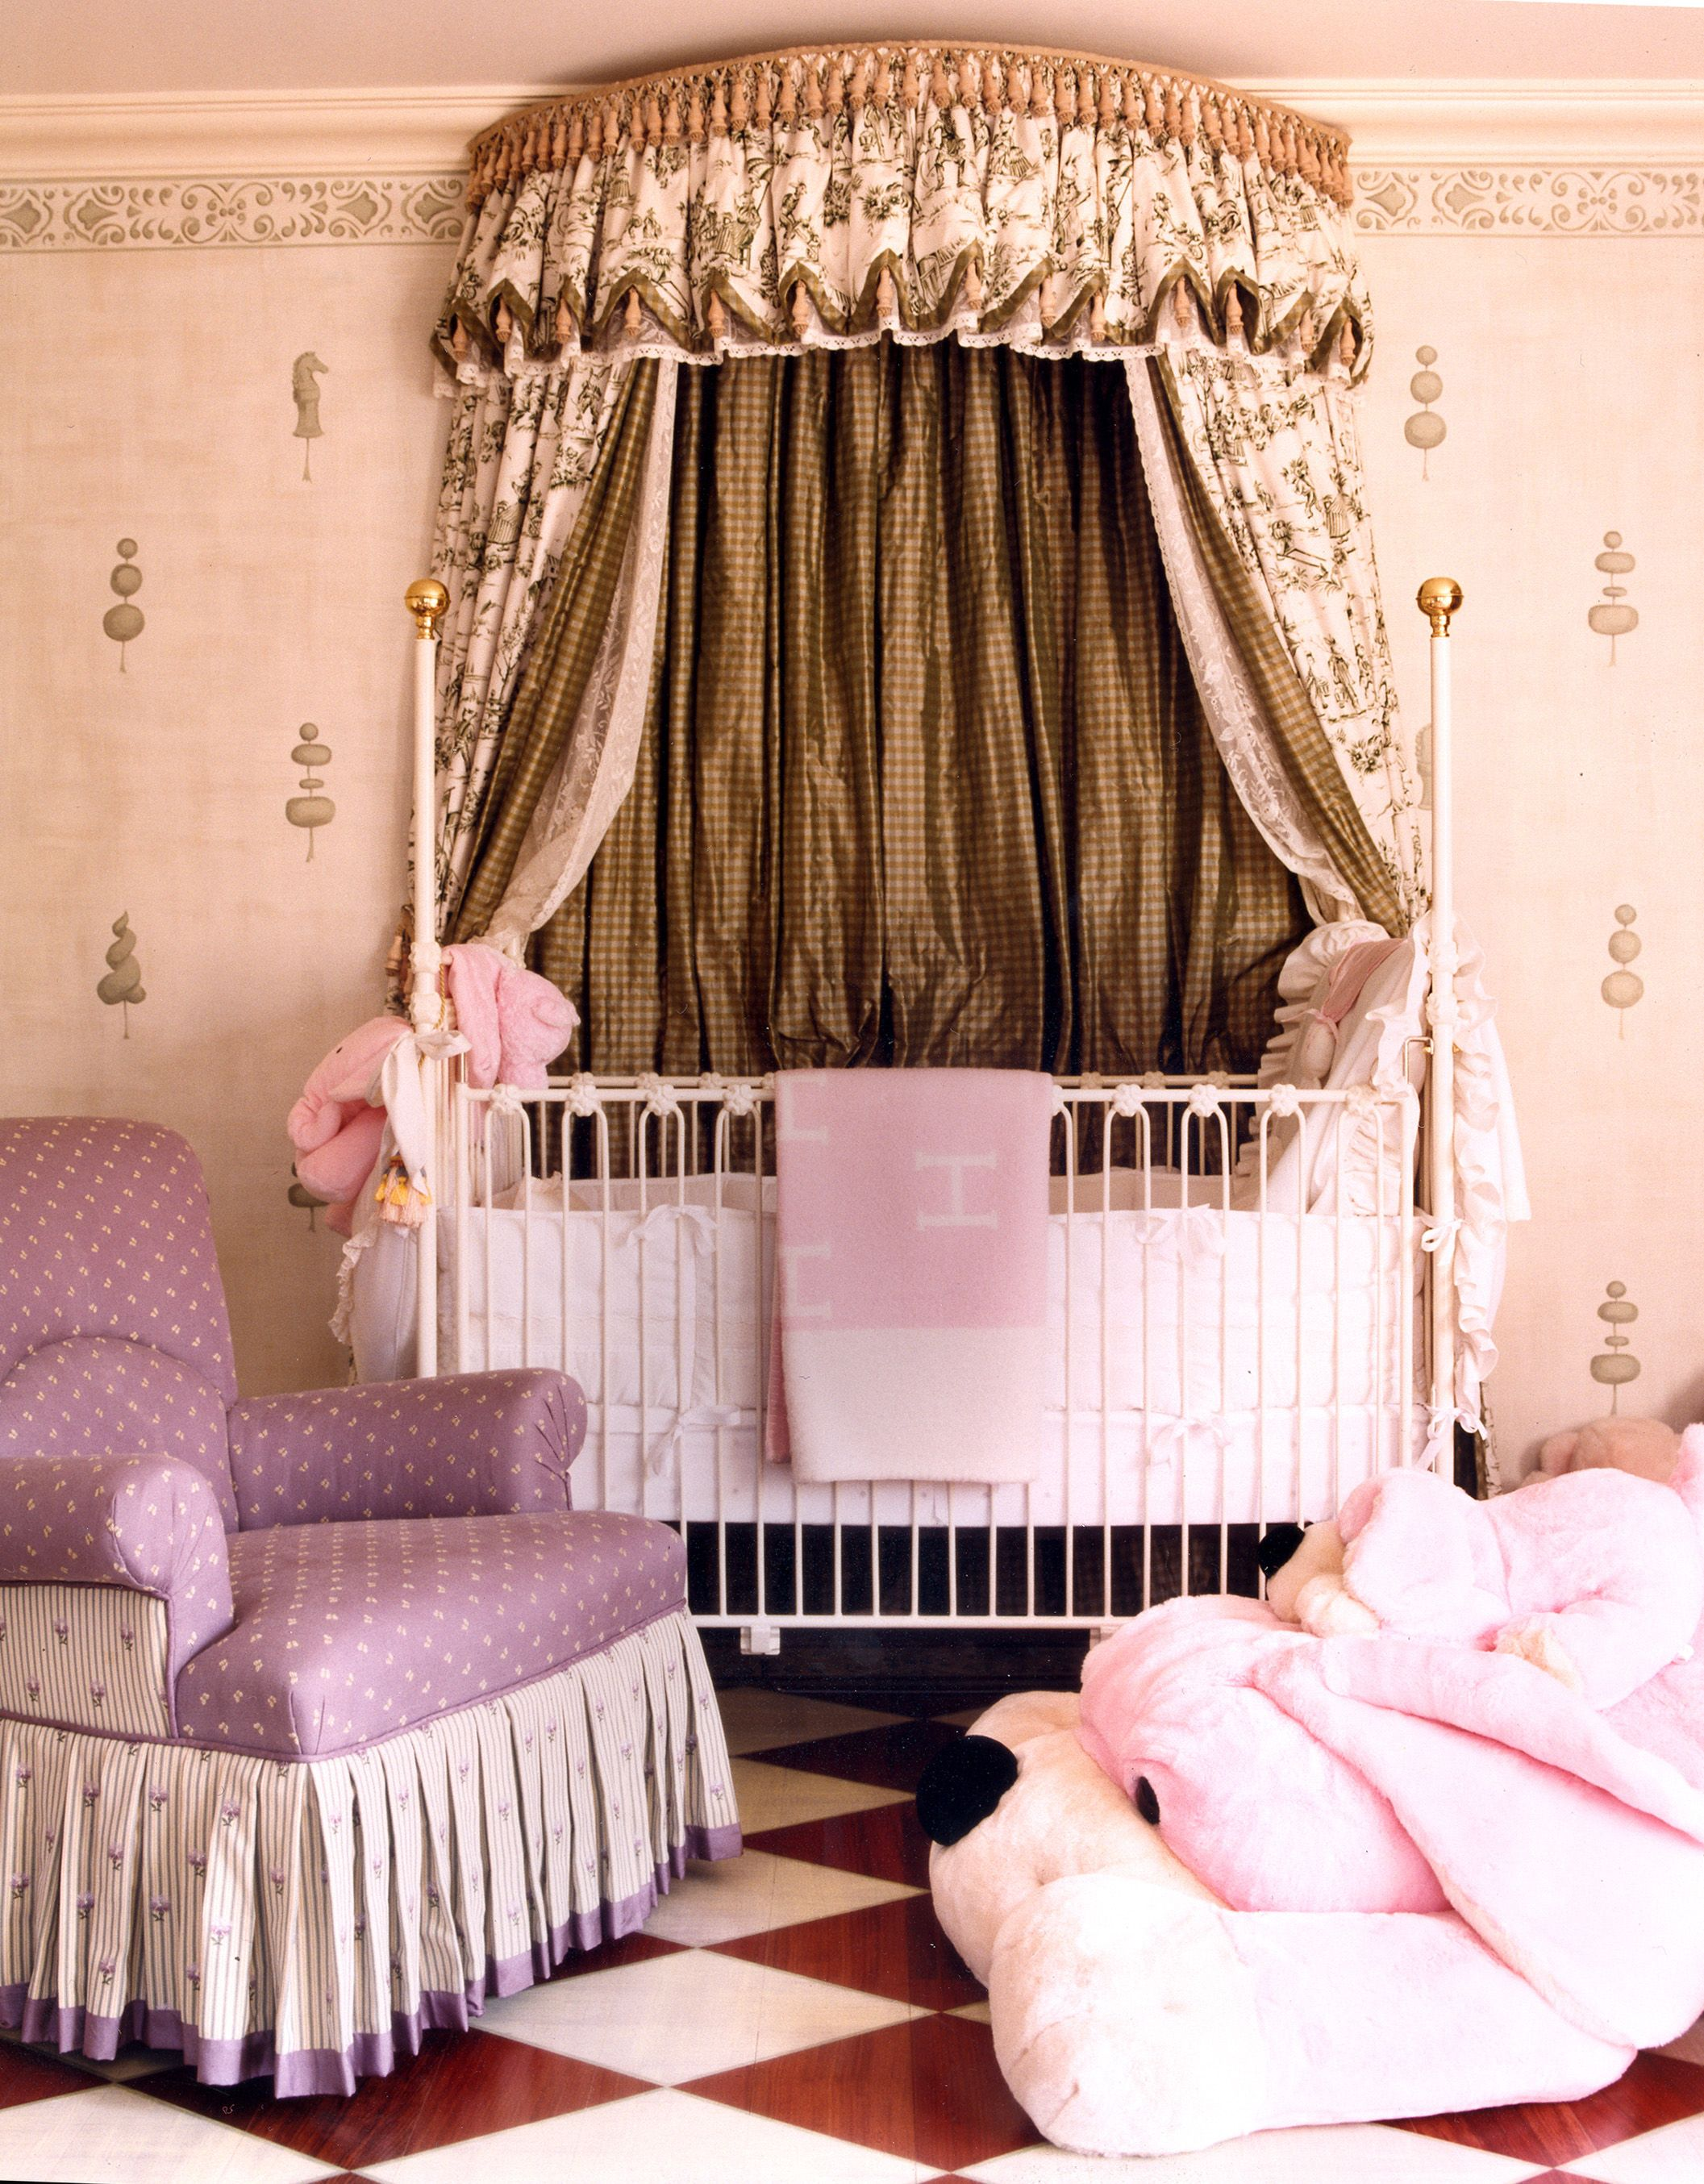 7 Cute Baby Girl Rooms - Nursery Decorating Ideas for Baby Girls